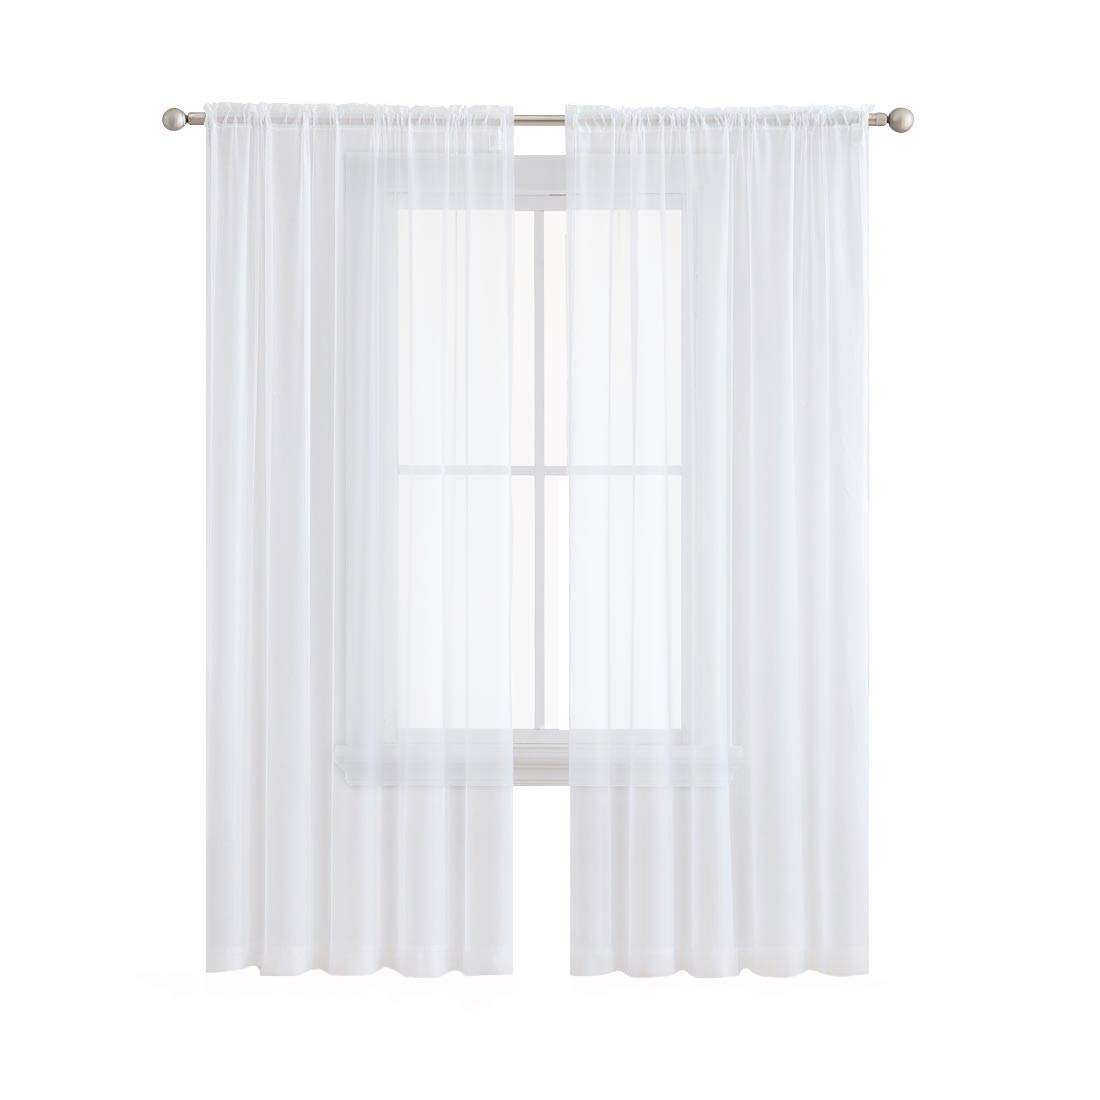 Anjee 2 Panels White Sheer Curtains 45 Inches Long, Rod Pocket Window Treatment Sheer Voile Drapes for Bedroom, Living Room, Kitchen, W54 x L45 Inch